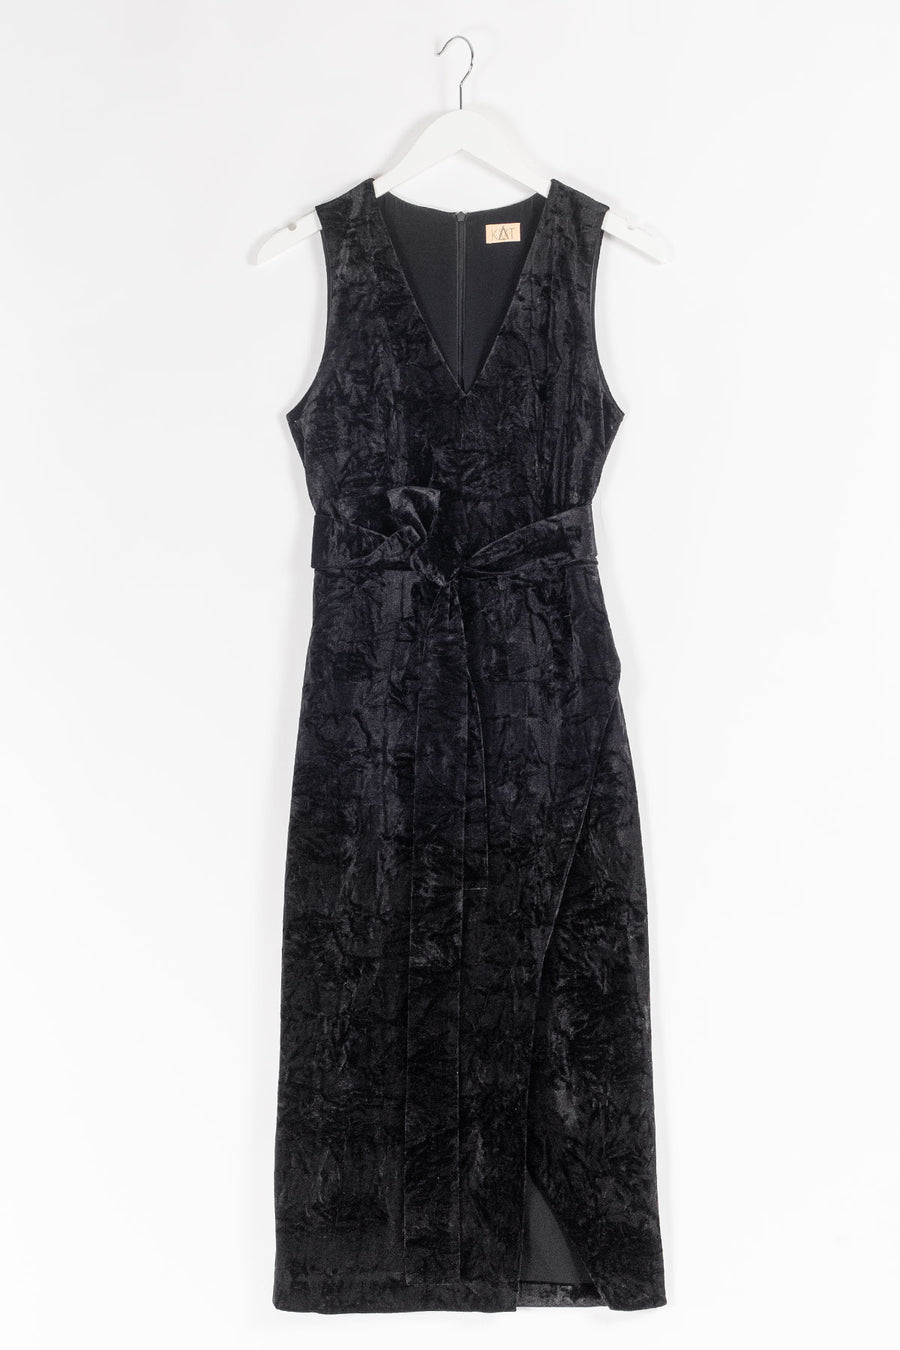 LEA Belted Velvet Side Slit Cocktail Dress - Black